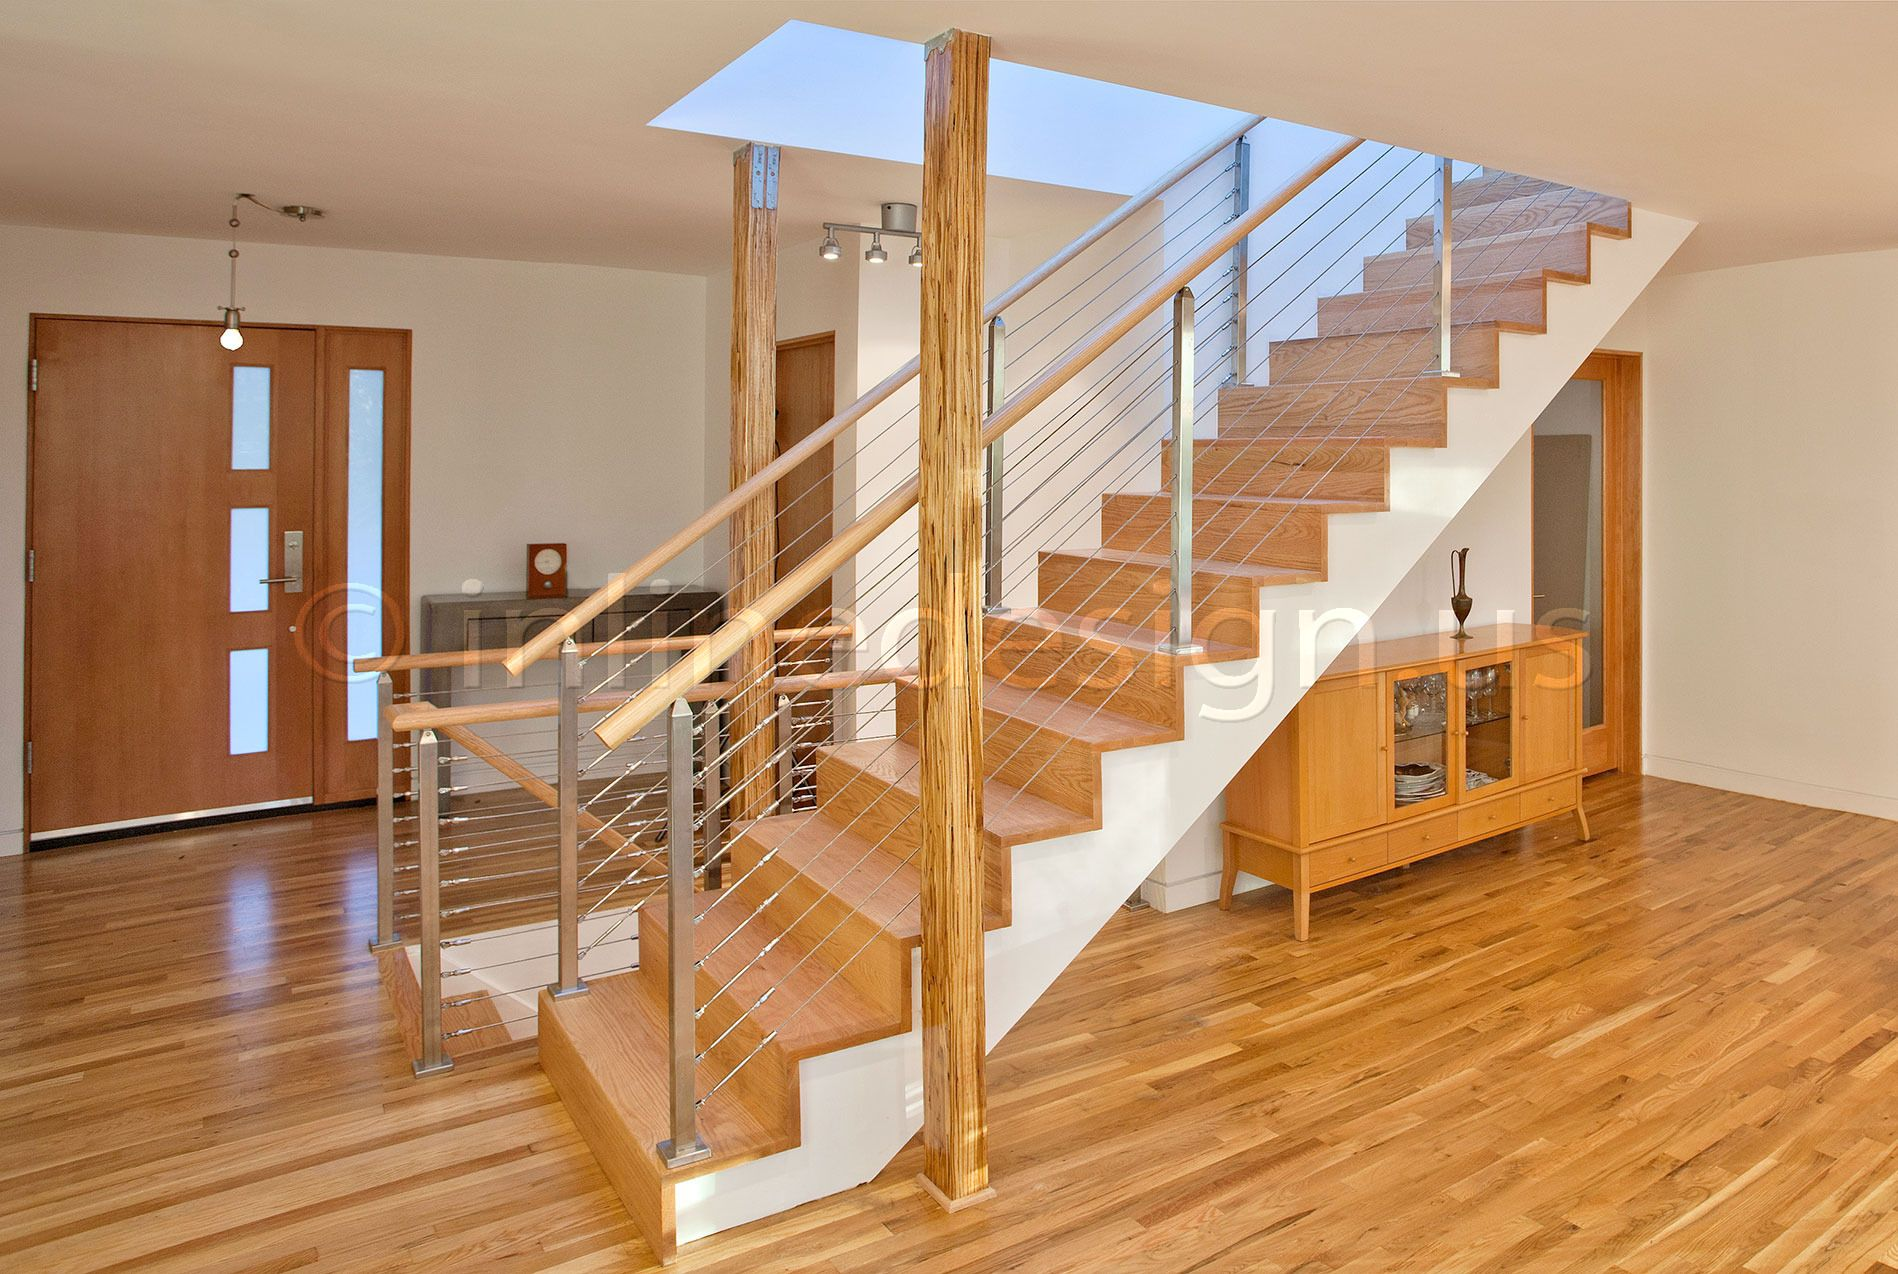 Modern Stainless Steel Railing & Handrail of Cable & Glass ...